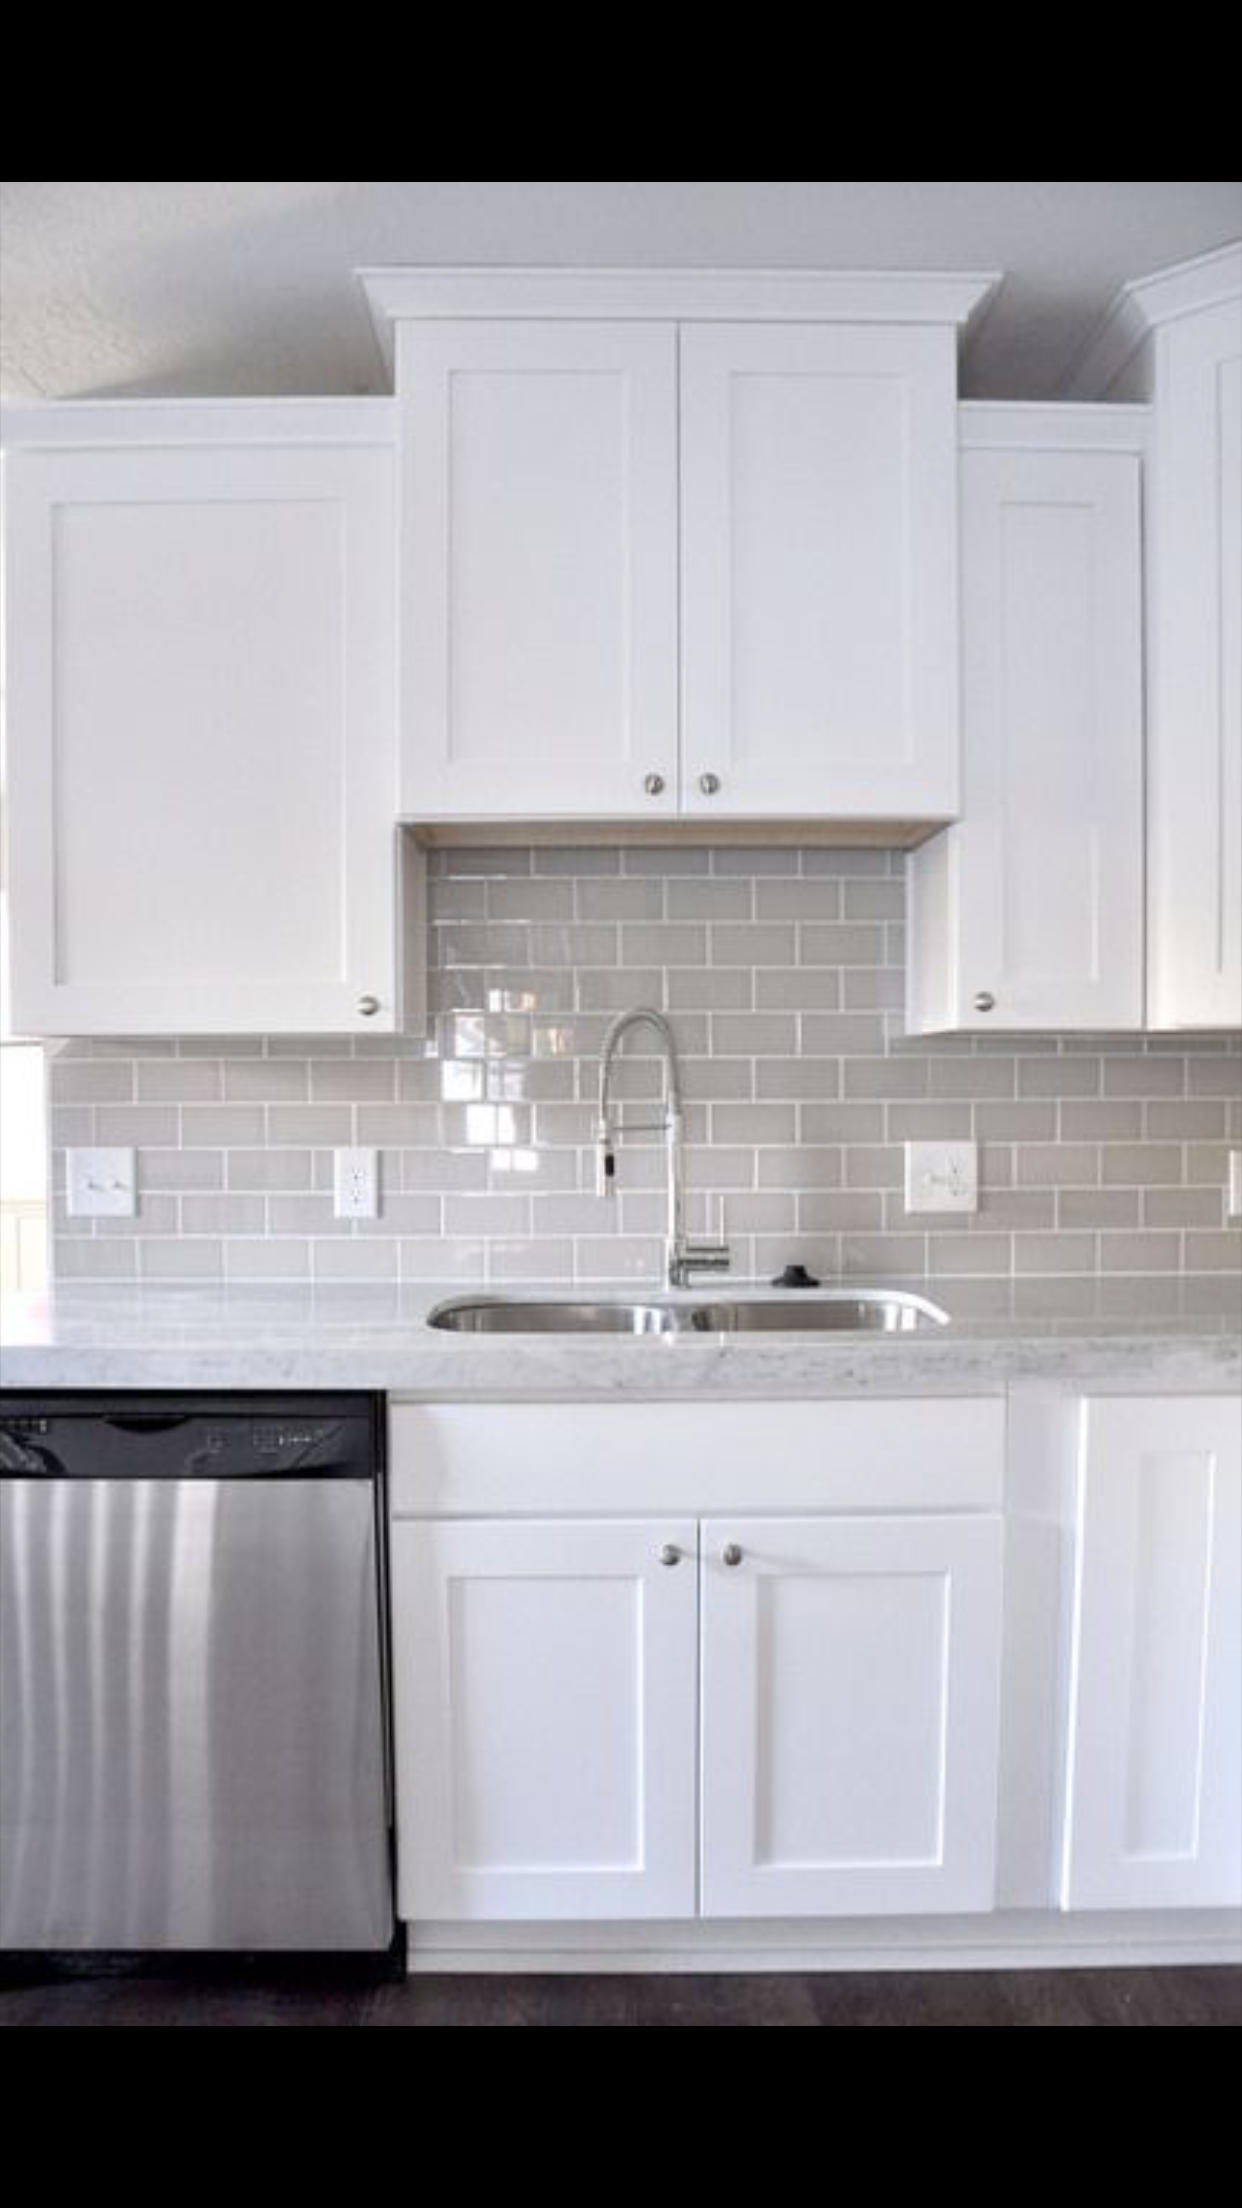 - Backsplash Is Gray Glass Tile MDK (With Images) Kitchen Cabinets